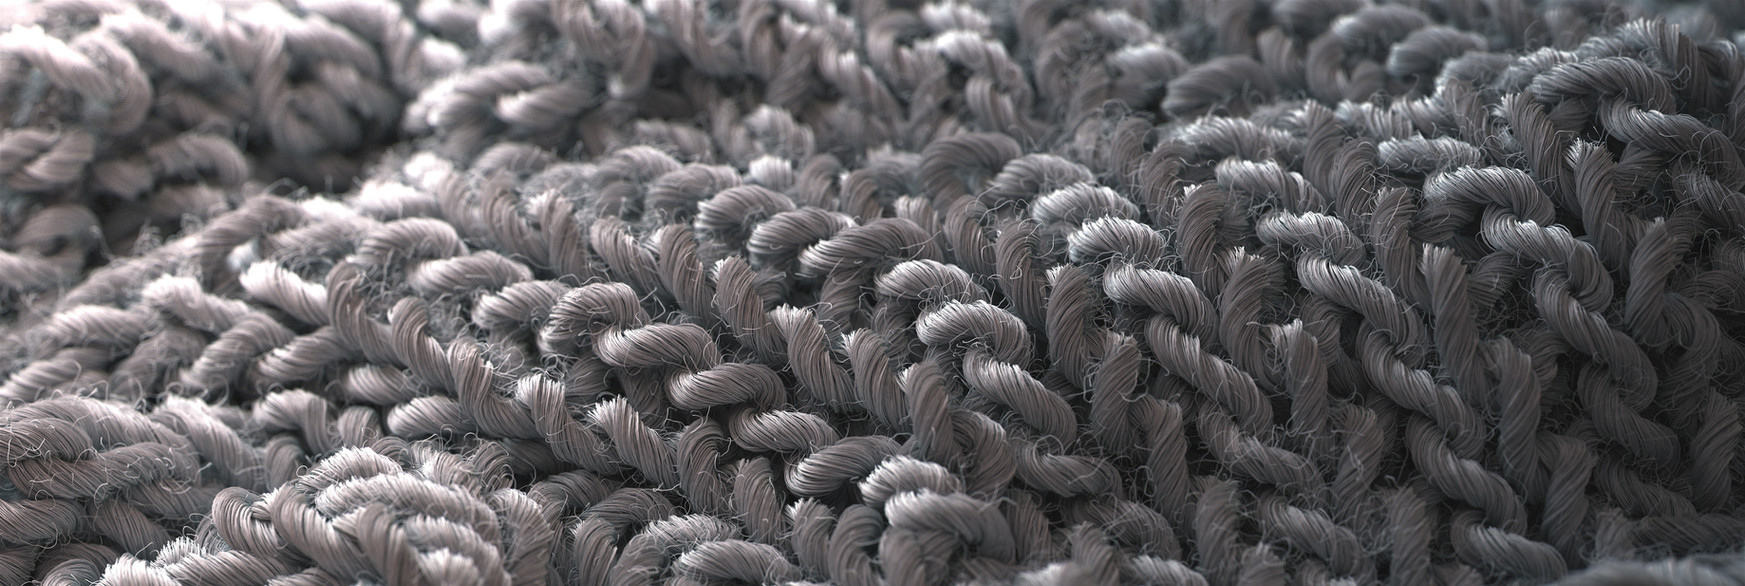 3d-Digital-Fabric-close-up-macro.jpg